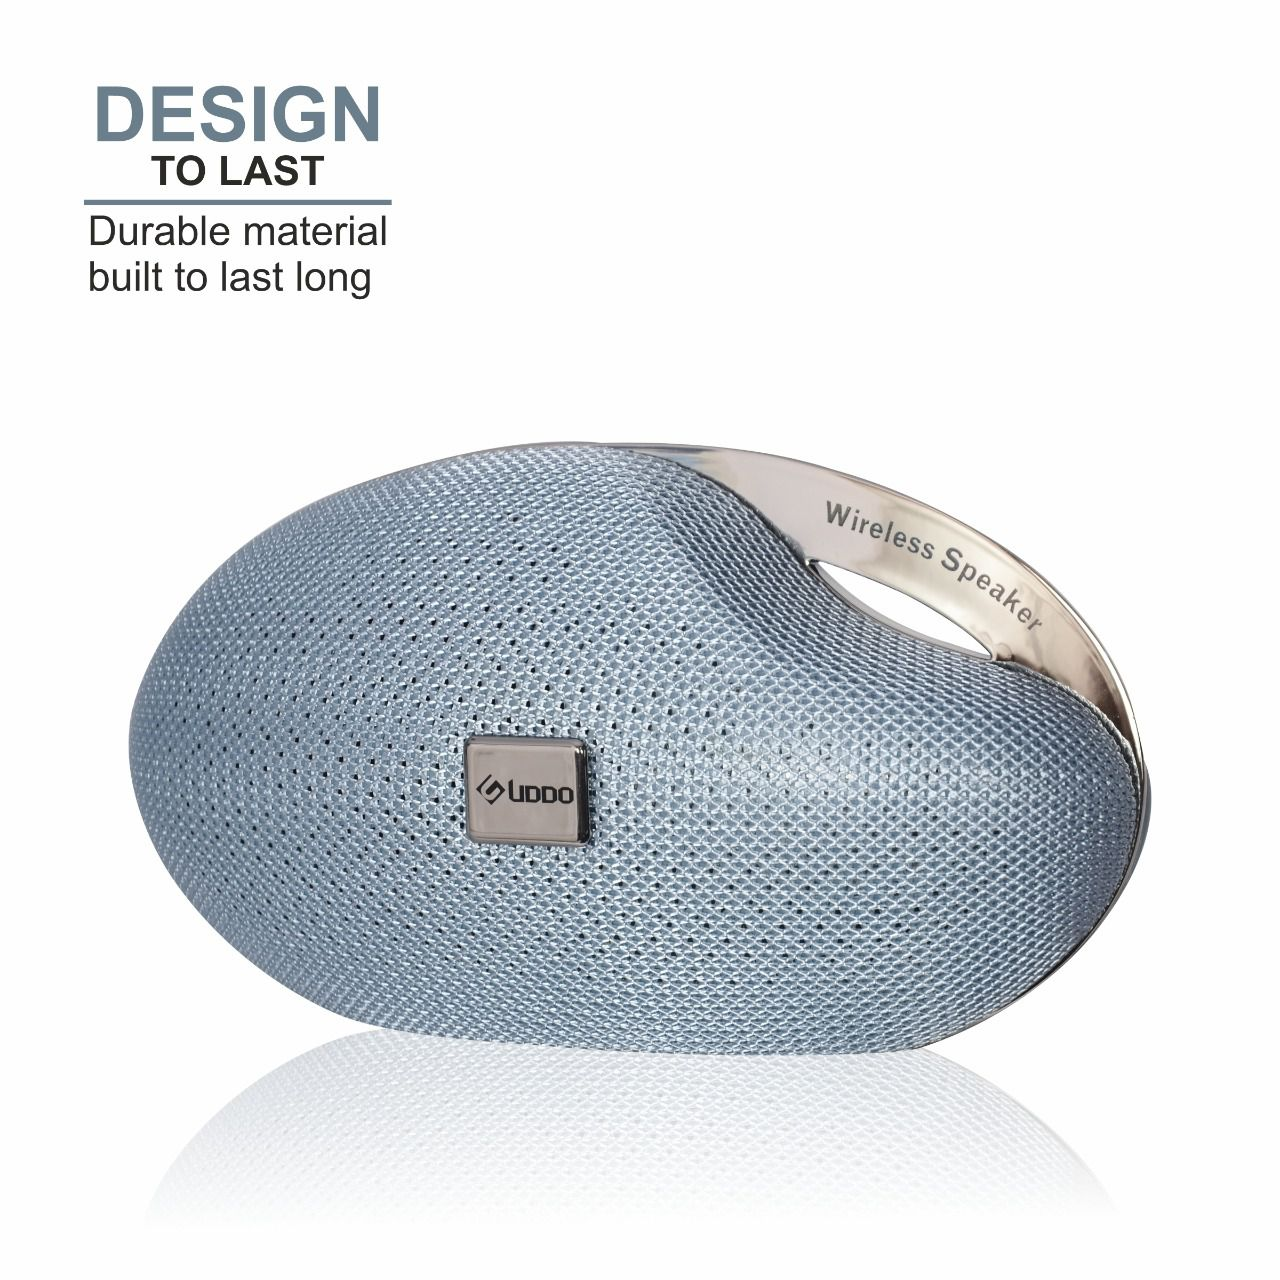 Pingaksh UDDO UD-2011 WIRELESS BLUETOOTH SPEAKER WITH USB PORT FOR PEN DRIVE/FM RADIO/MICRO SD CARD SUPPORT  Bluetooth Speaker